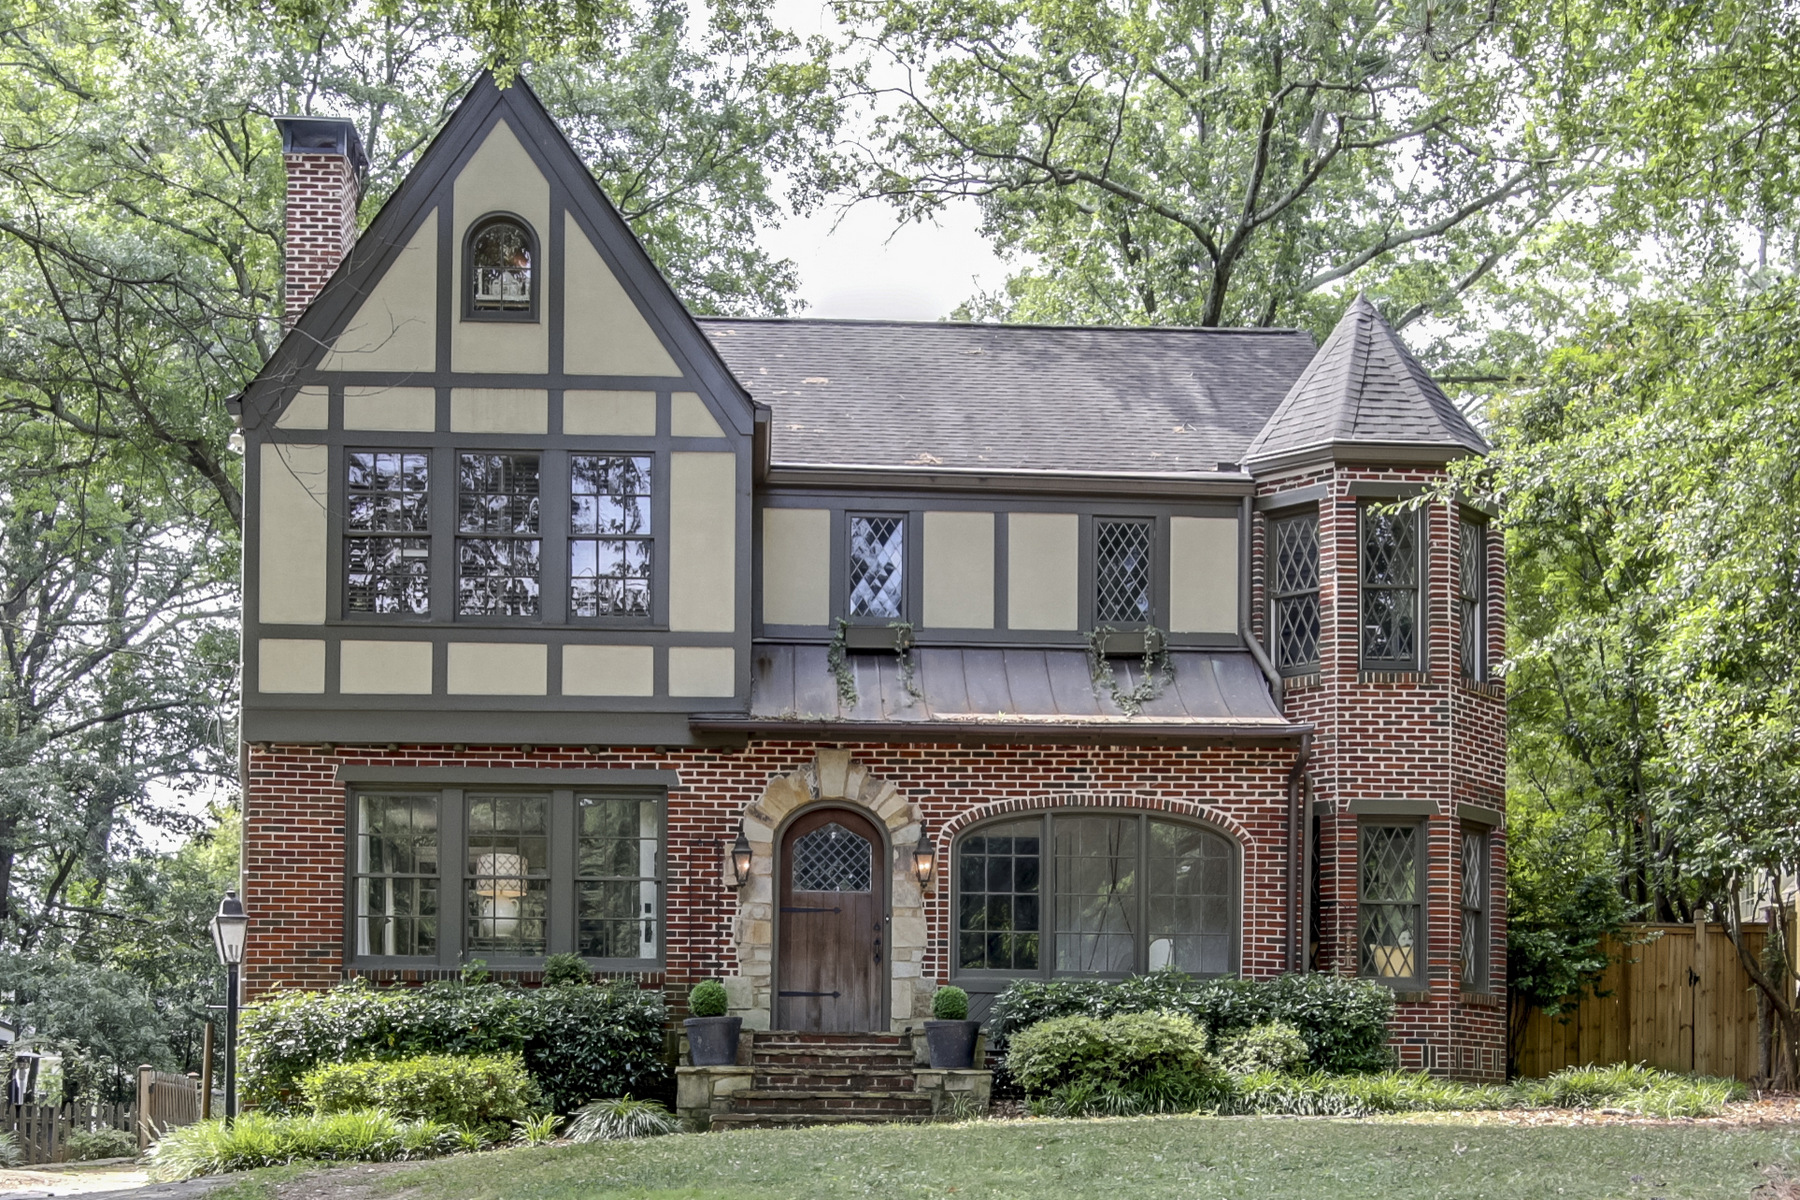 一戸建て のために 売買 アット Perfectly Charming In Peachtree Park 611 E Paces Ferry Road NE Peachtree Park, Atlanta, ジョージア, 30305 アメリカ合衆国